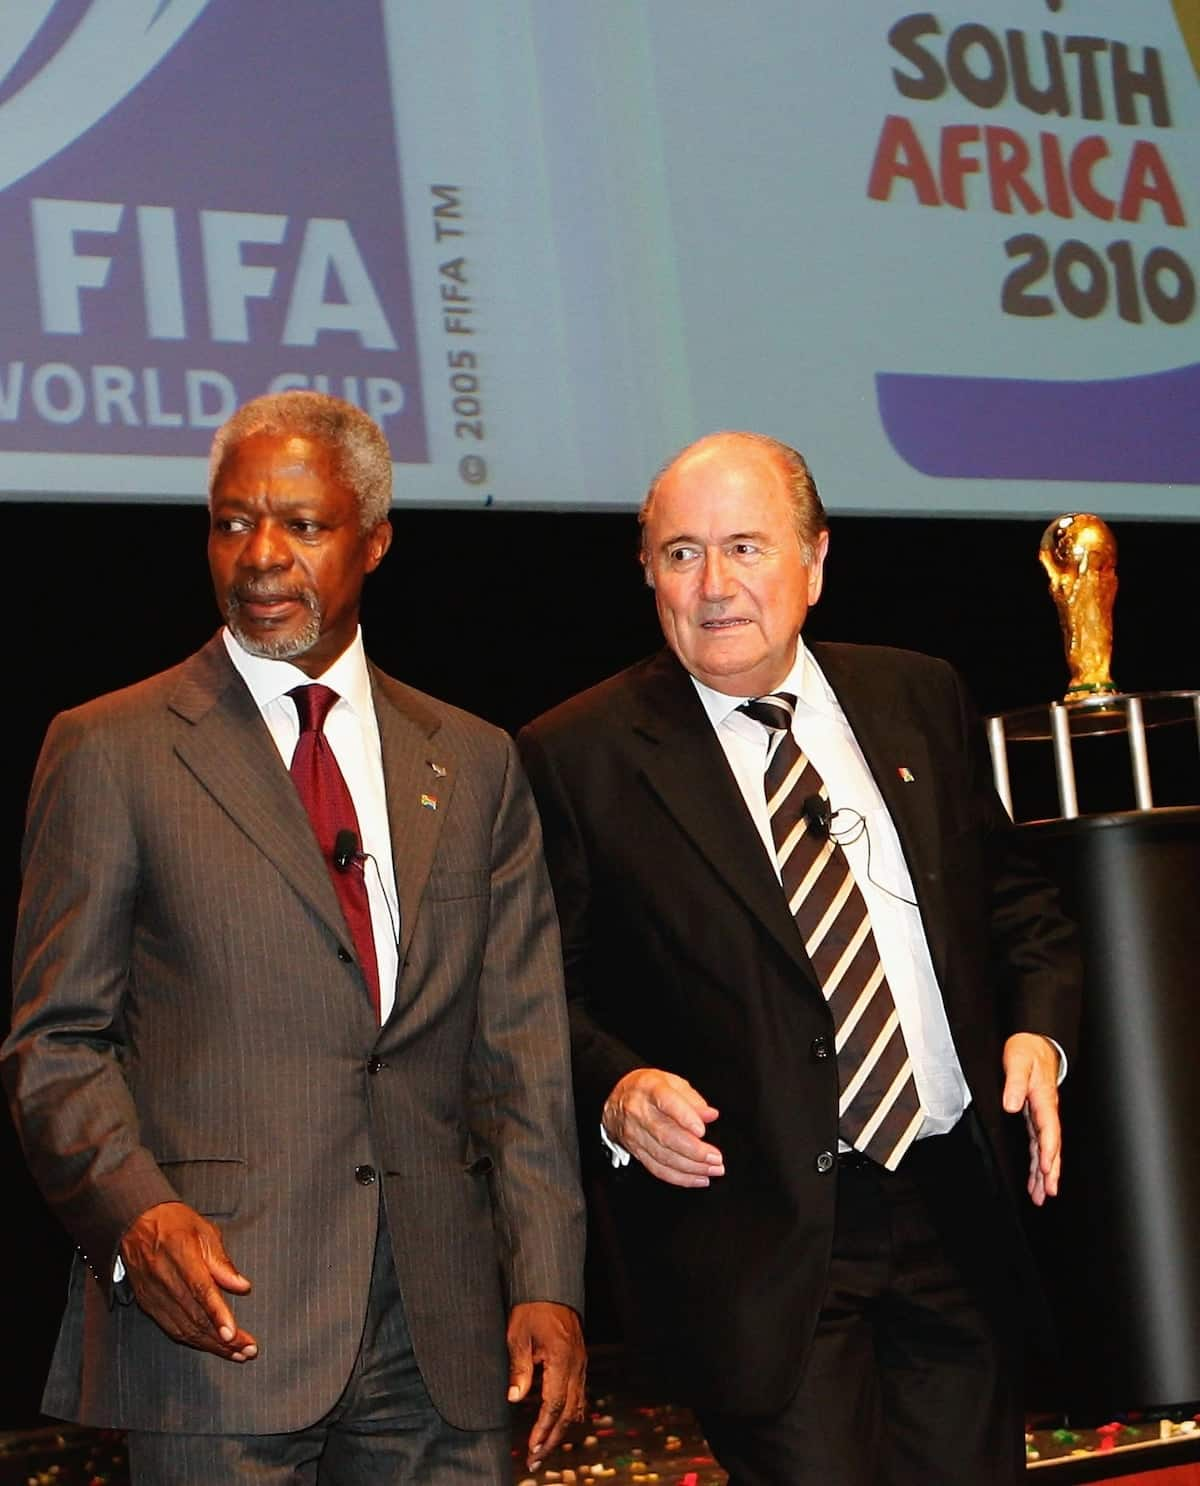 Former UN secretary general Kofi Annan was passionate about football, played on the right wing